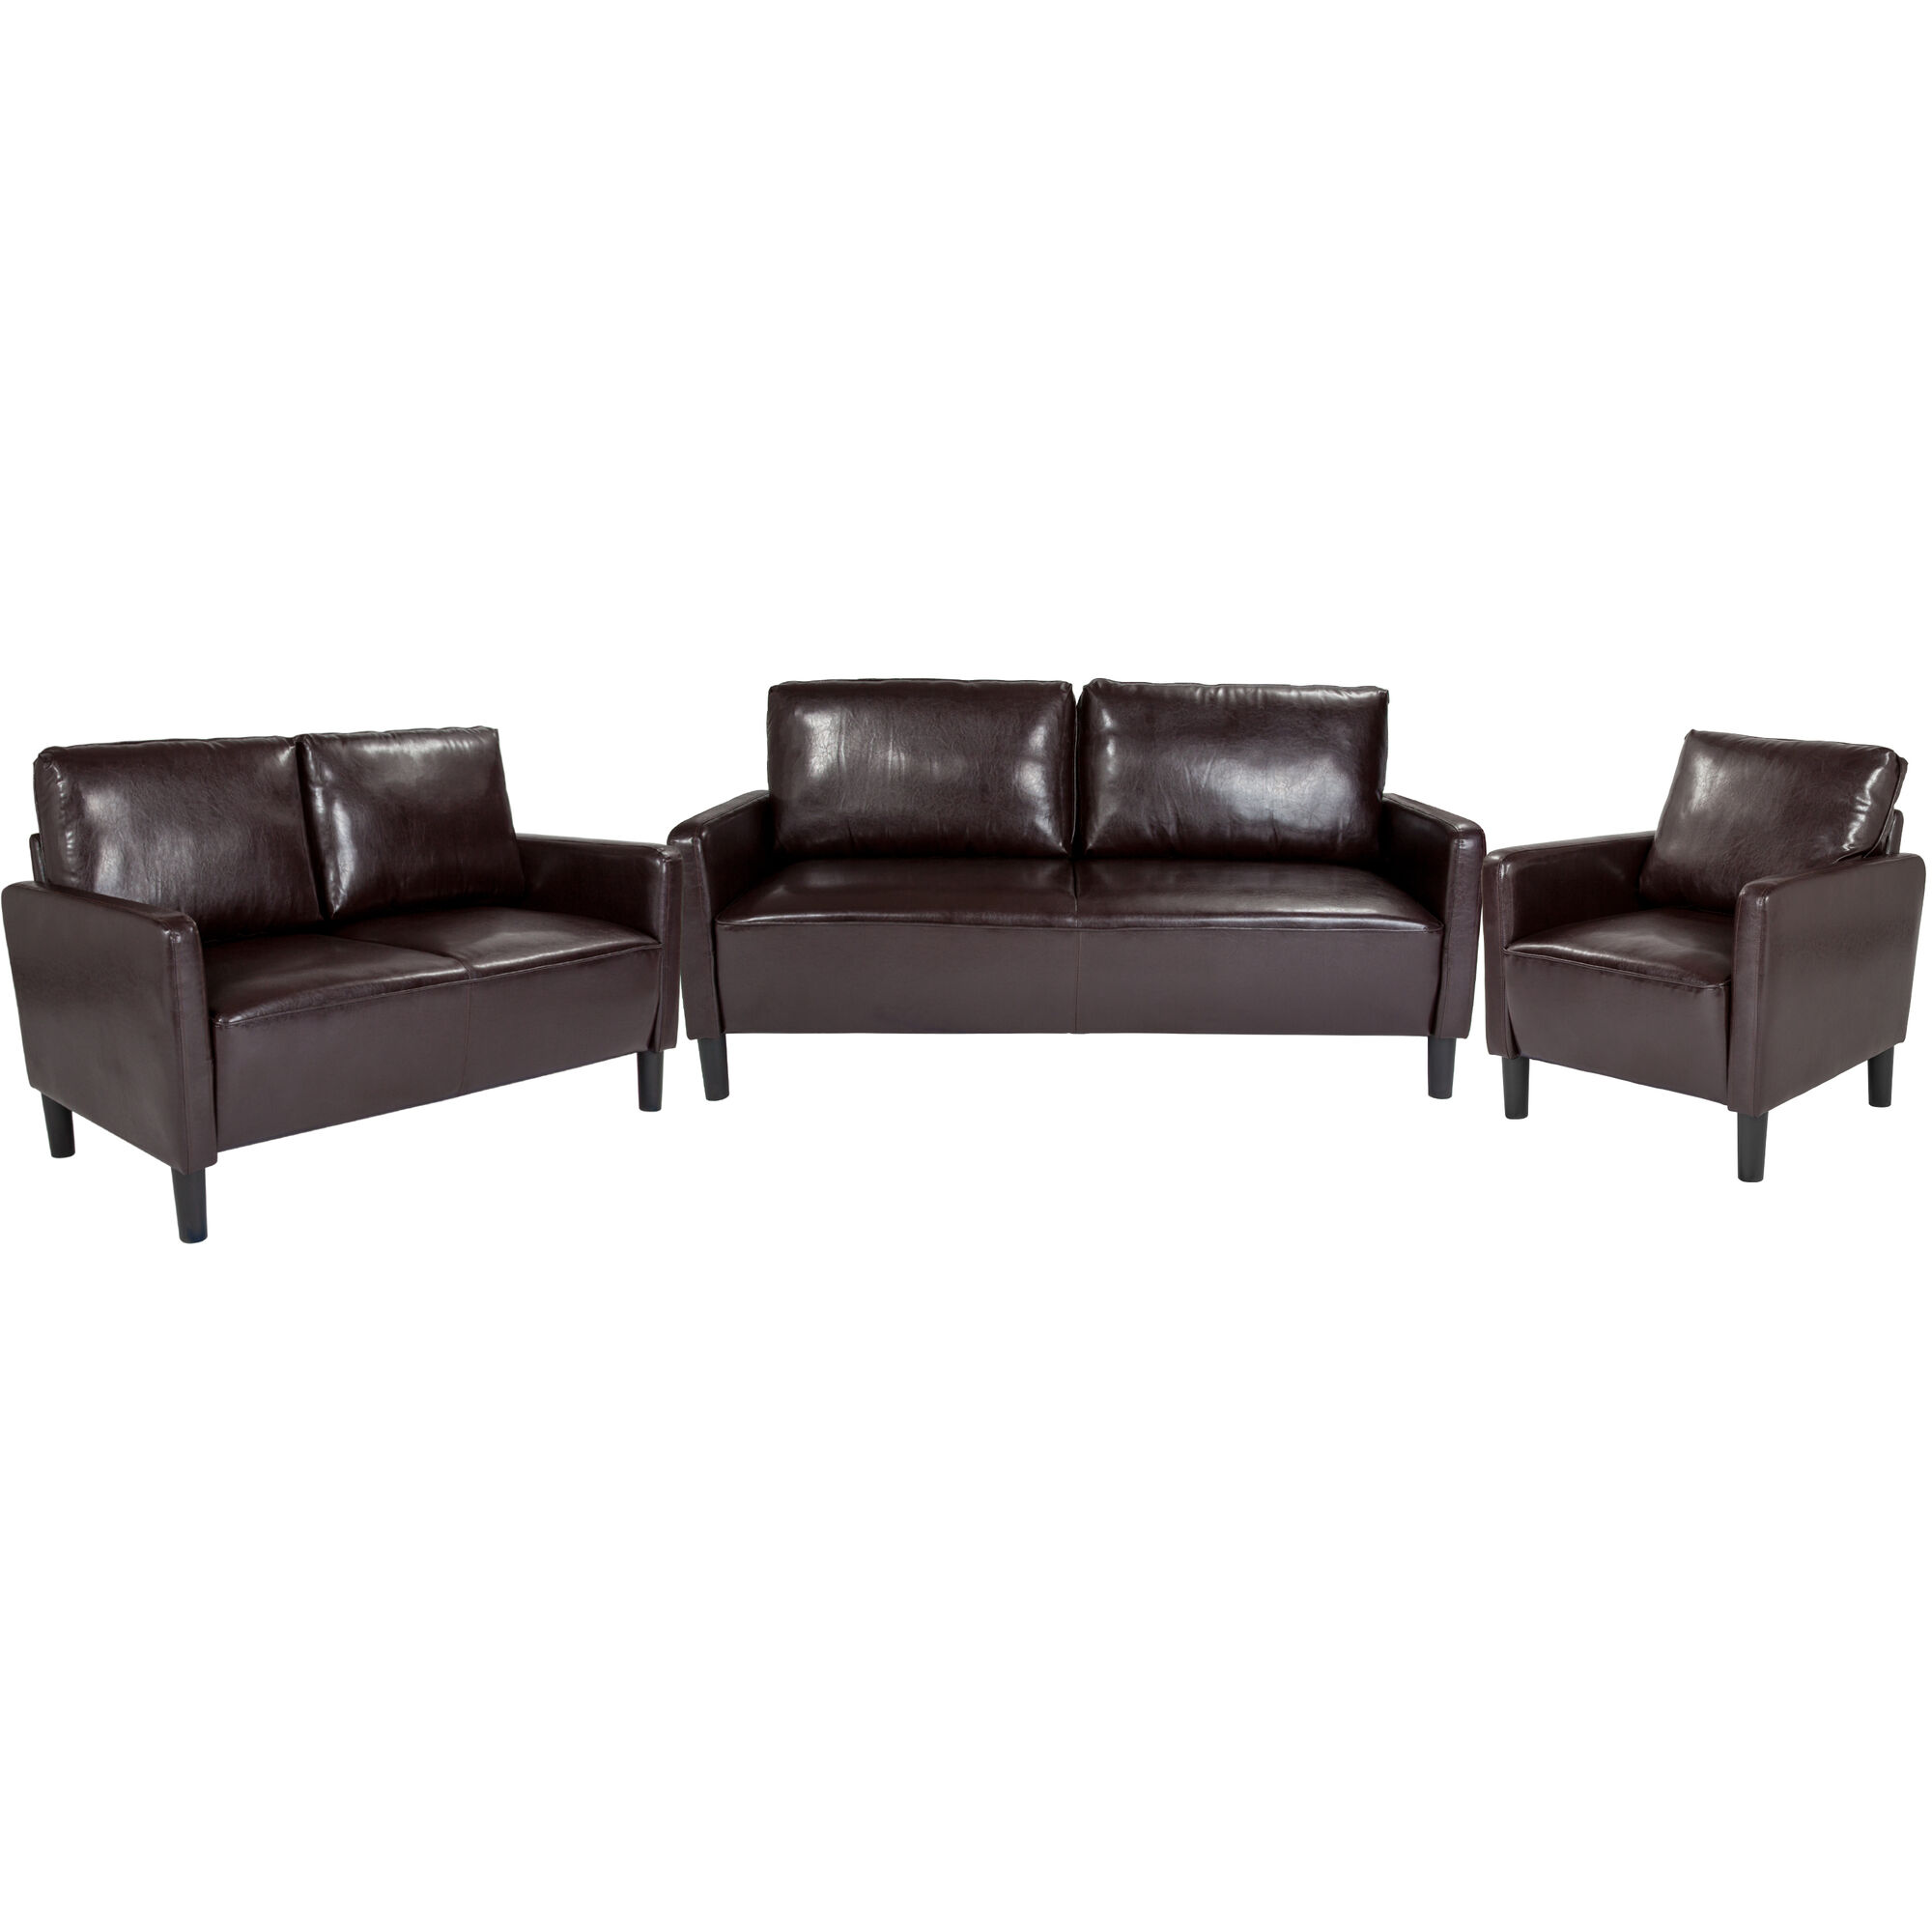 Groovy Washington Park 3 Piece Upholstered Set In Brown Leather Squirreltailoven Fun Painted Chair Ideas Images Squirreltailovenorg